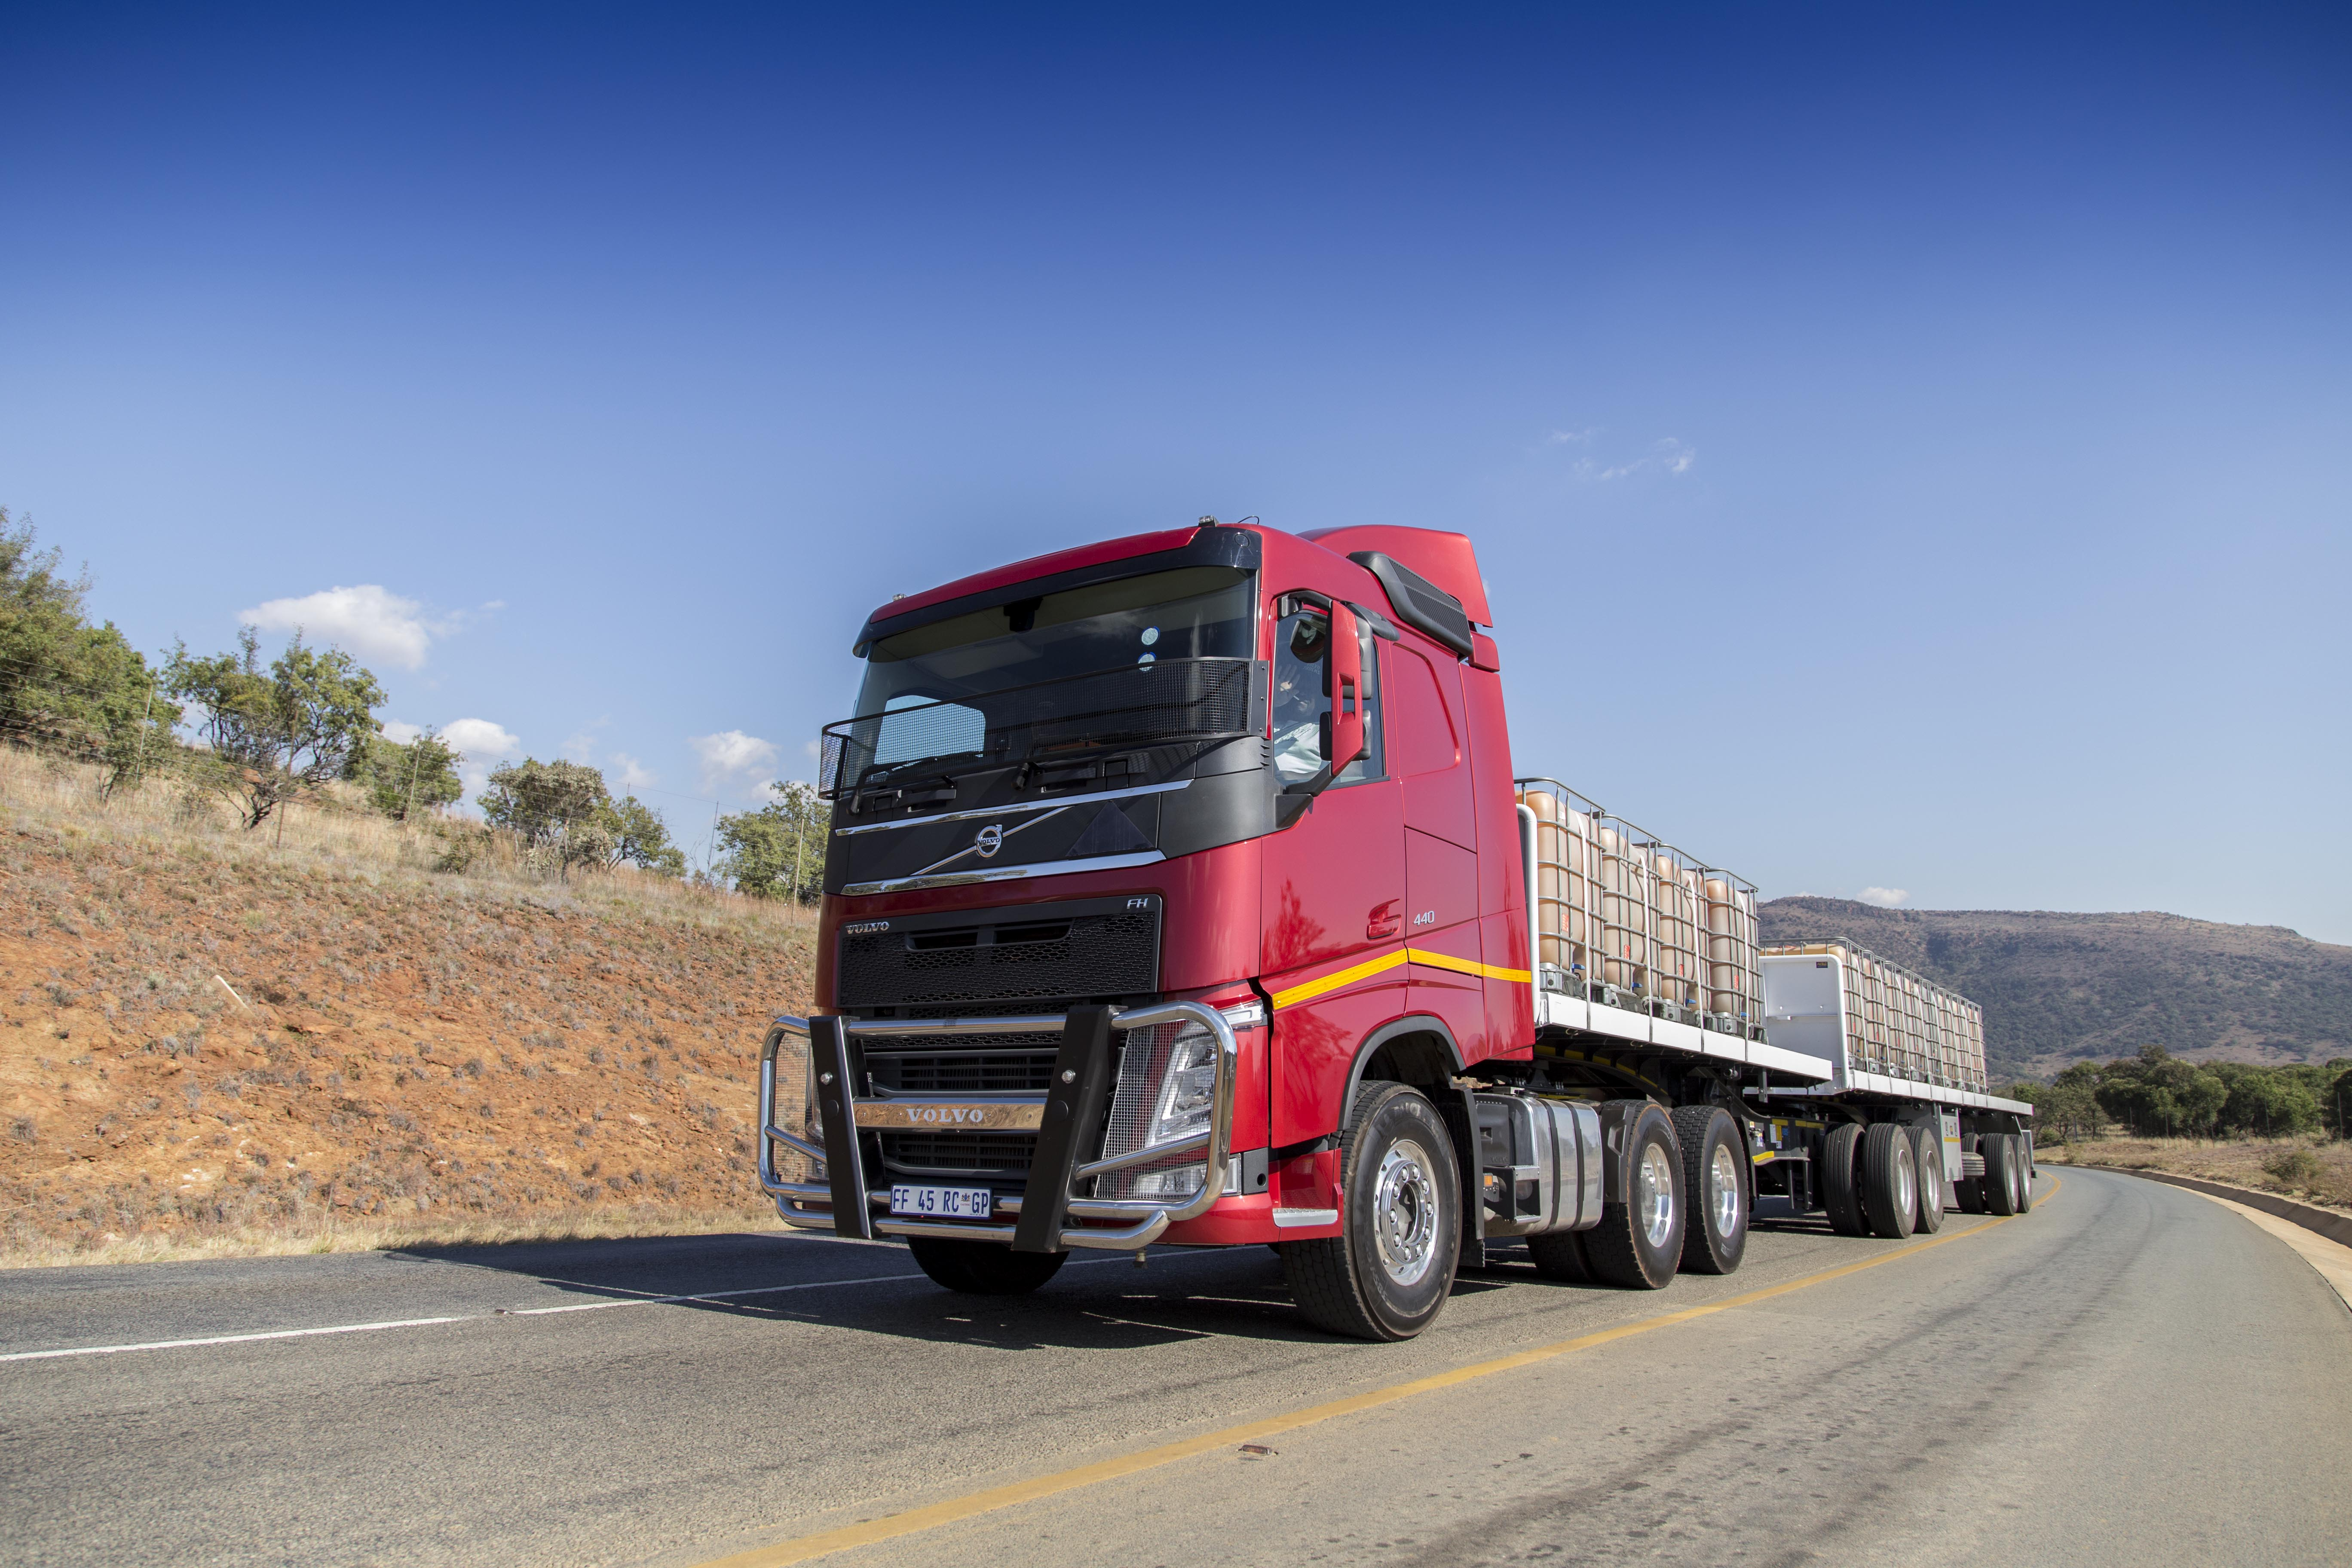 South Africa's most fuel-efficient trucker | Future ...